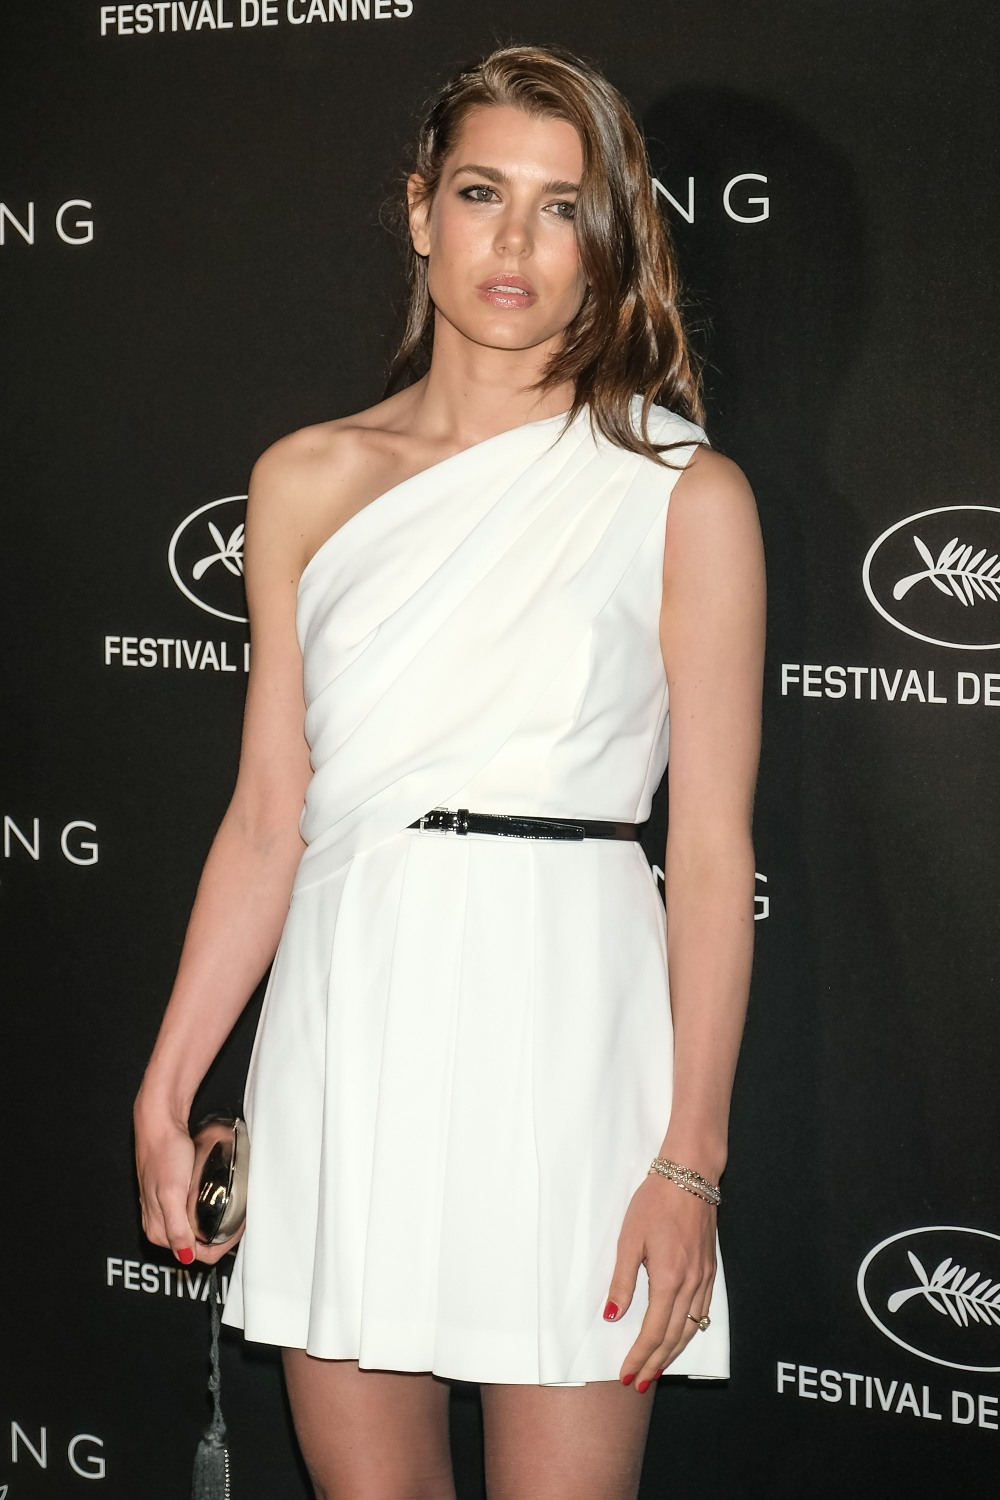 Charlotte Casiraghi arrives at the 2019 Kering Women in Motion Awards  on Sunday 19 May 2019 at the 72nd Festival de Cannes